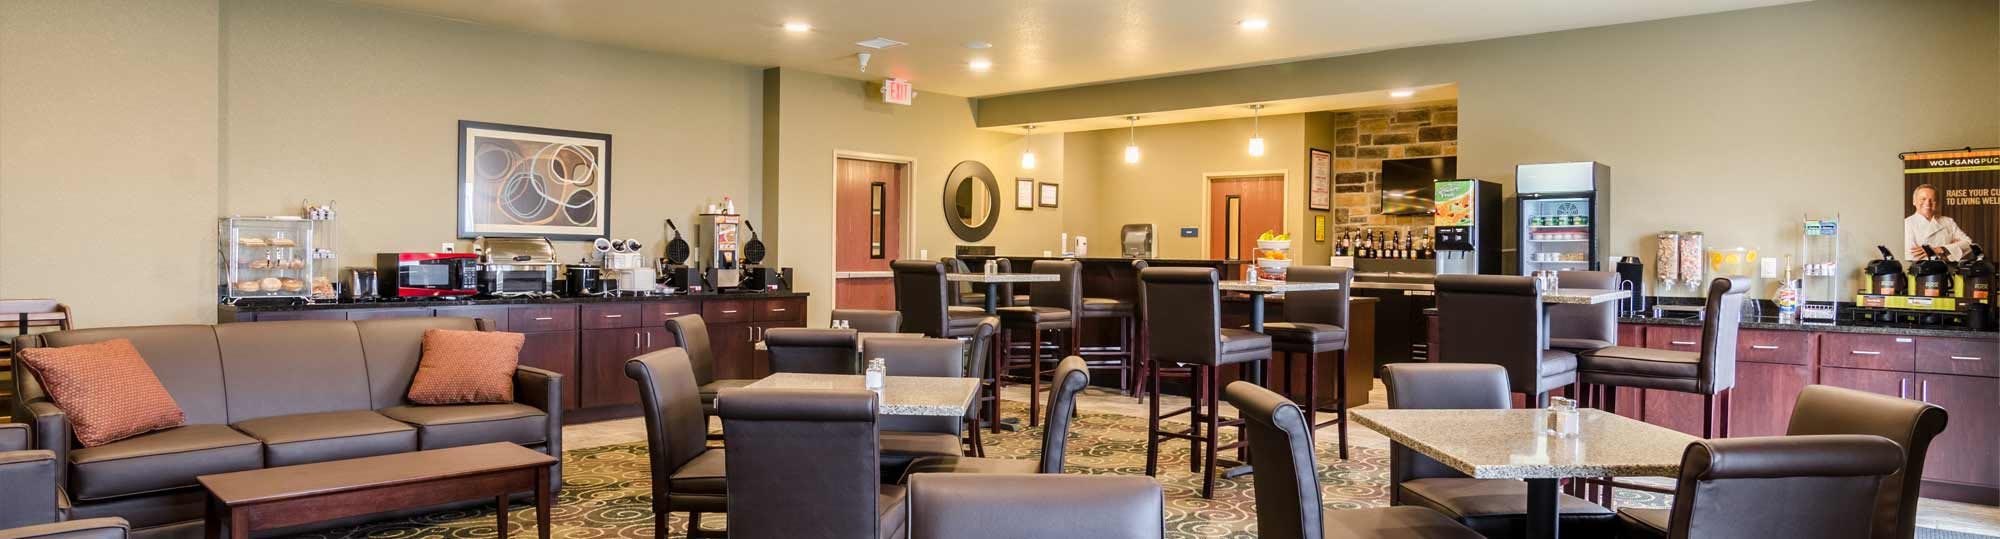 Cobblestone Hotel and Suites McCook